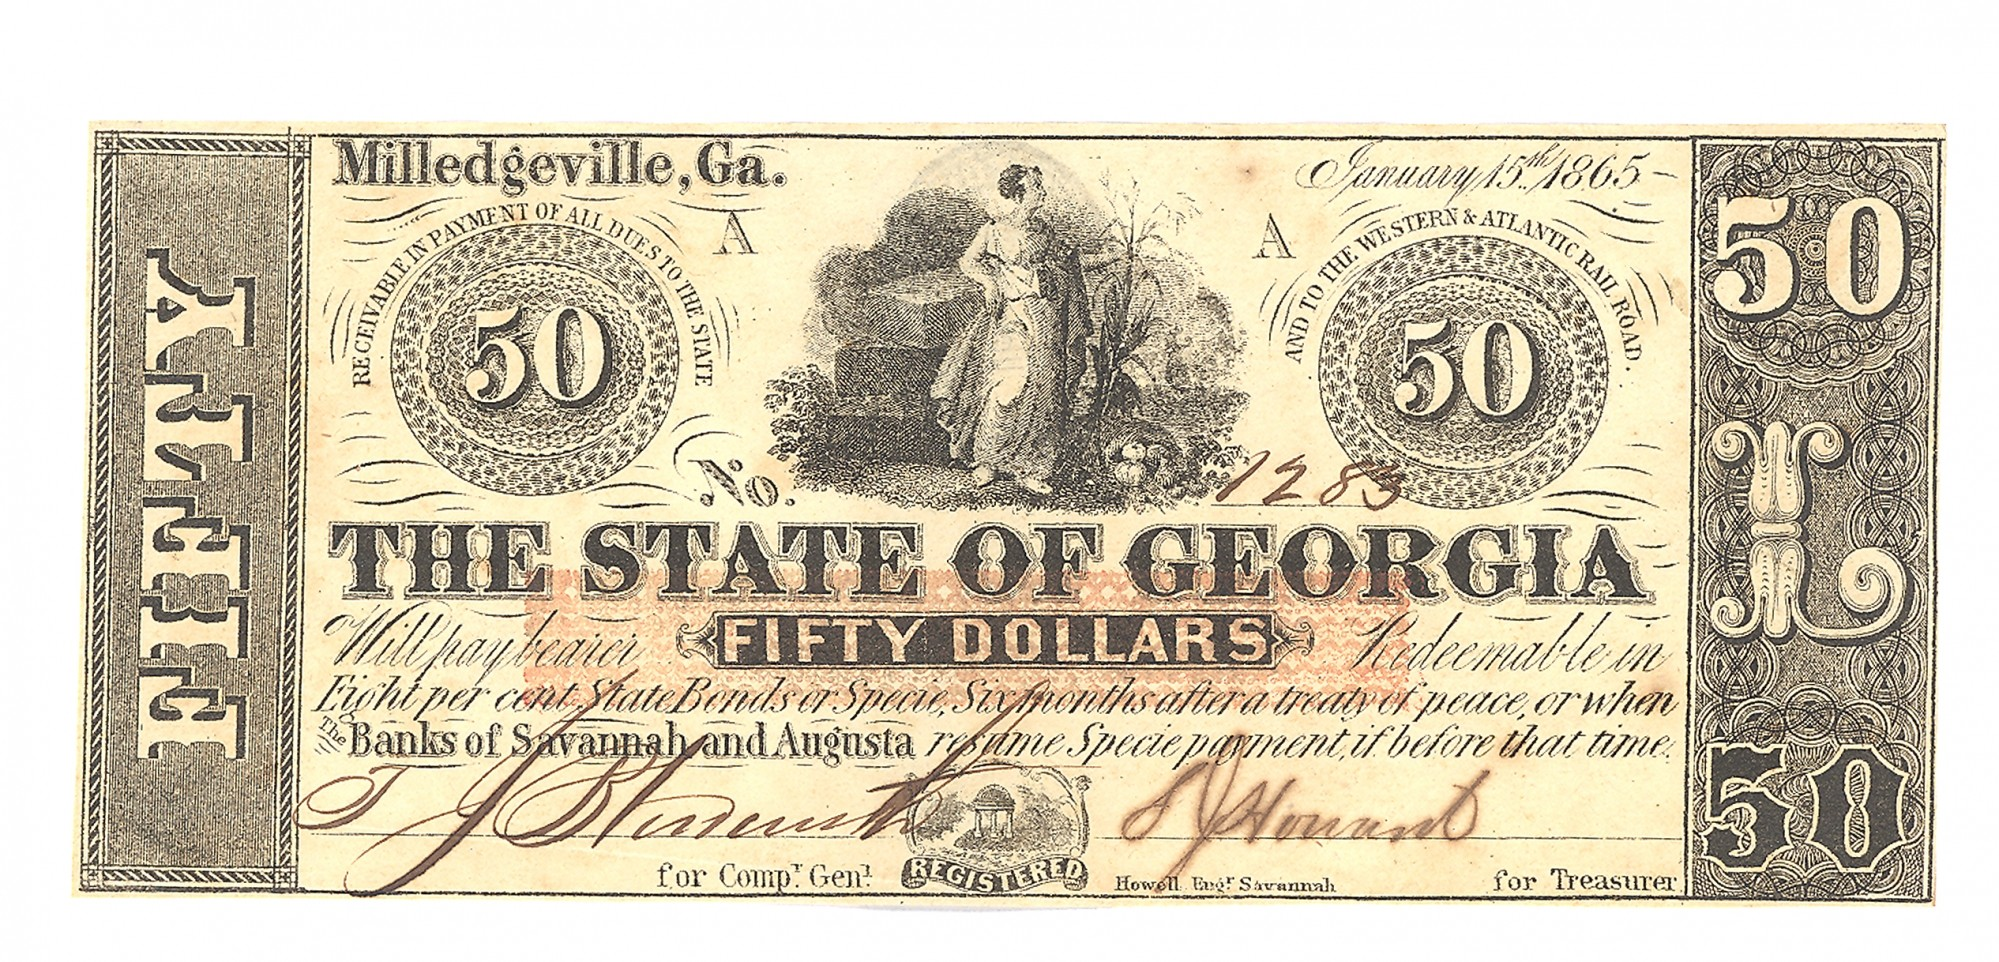 THE STATE OF GEORGIA, GEORGIA, $50 NOTE